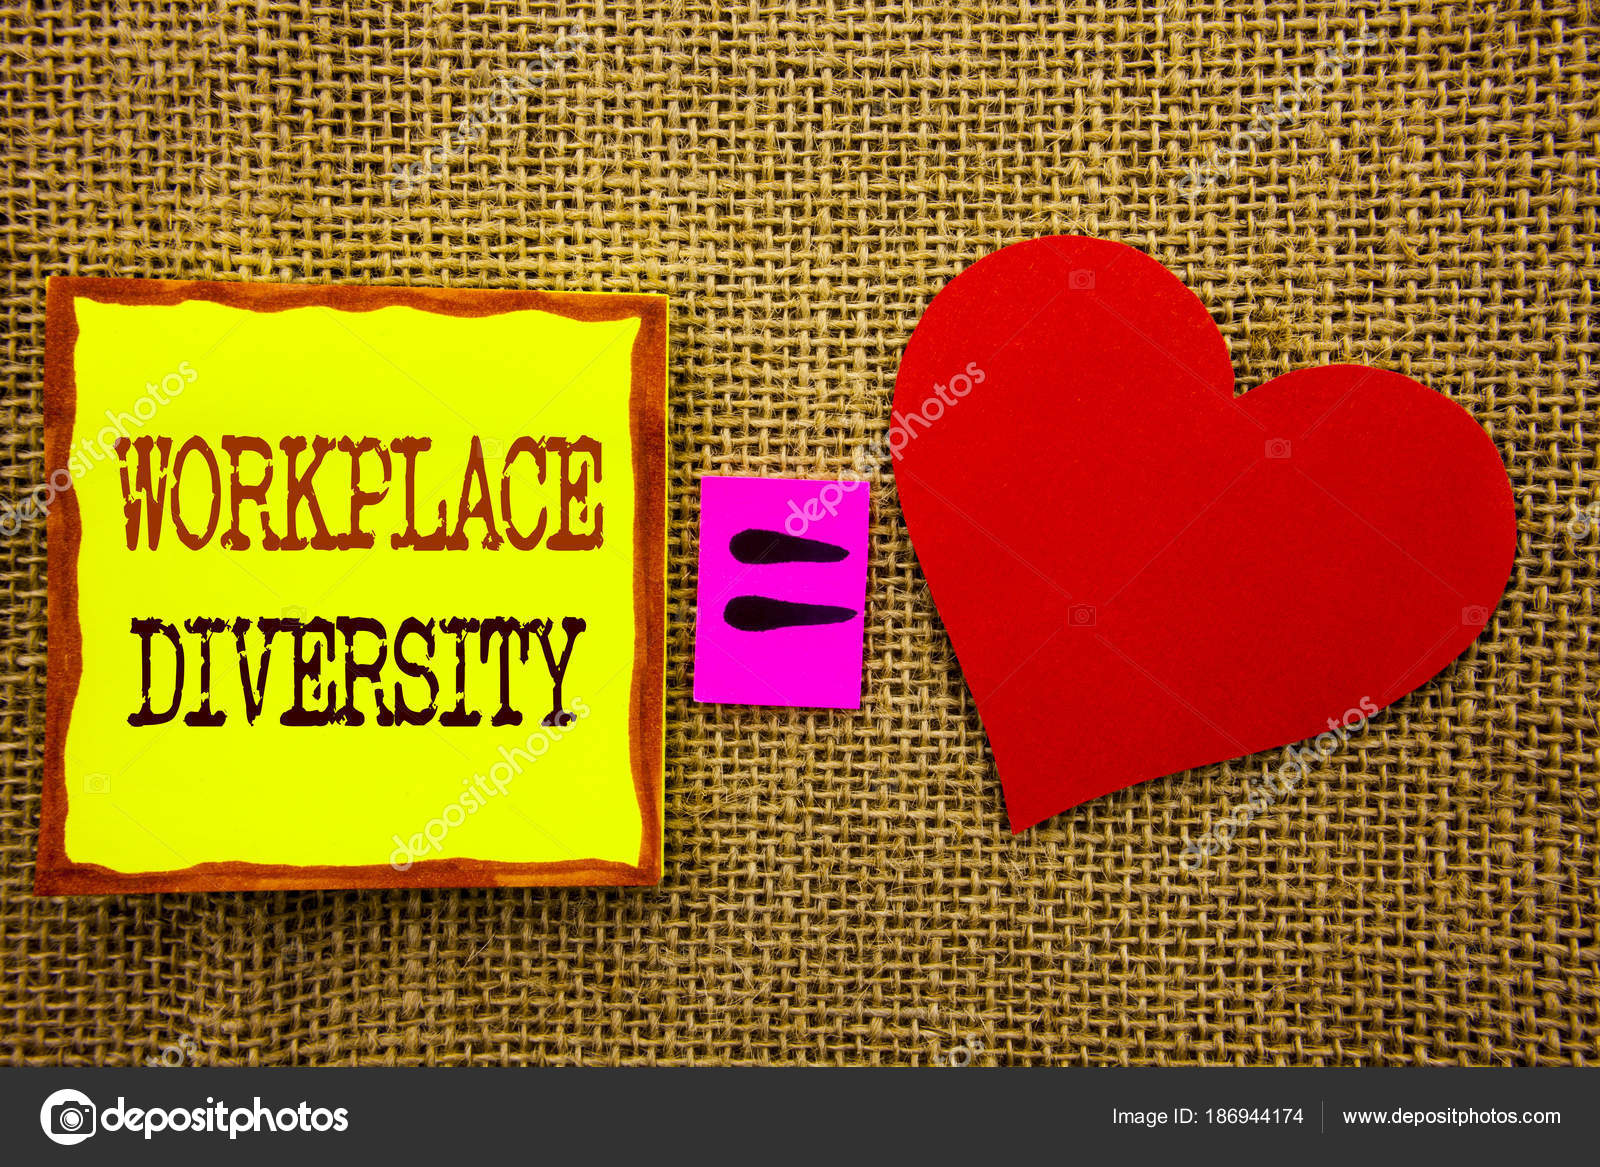 Diversity Meaning Workplace >> Handwriting Text Showing Workplace Diversity Business